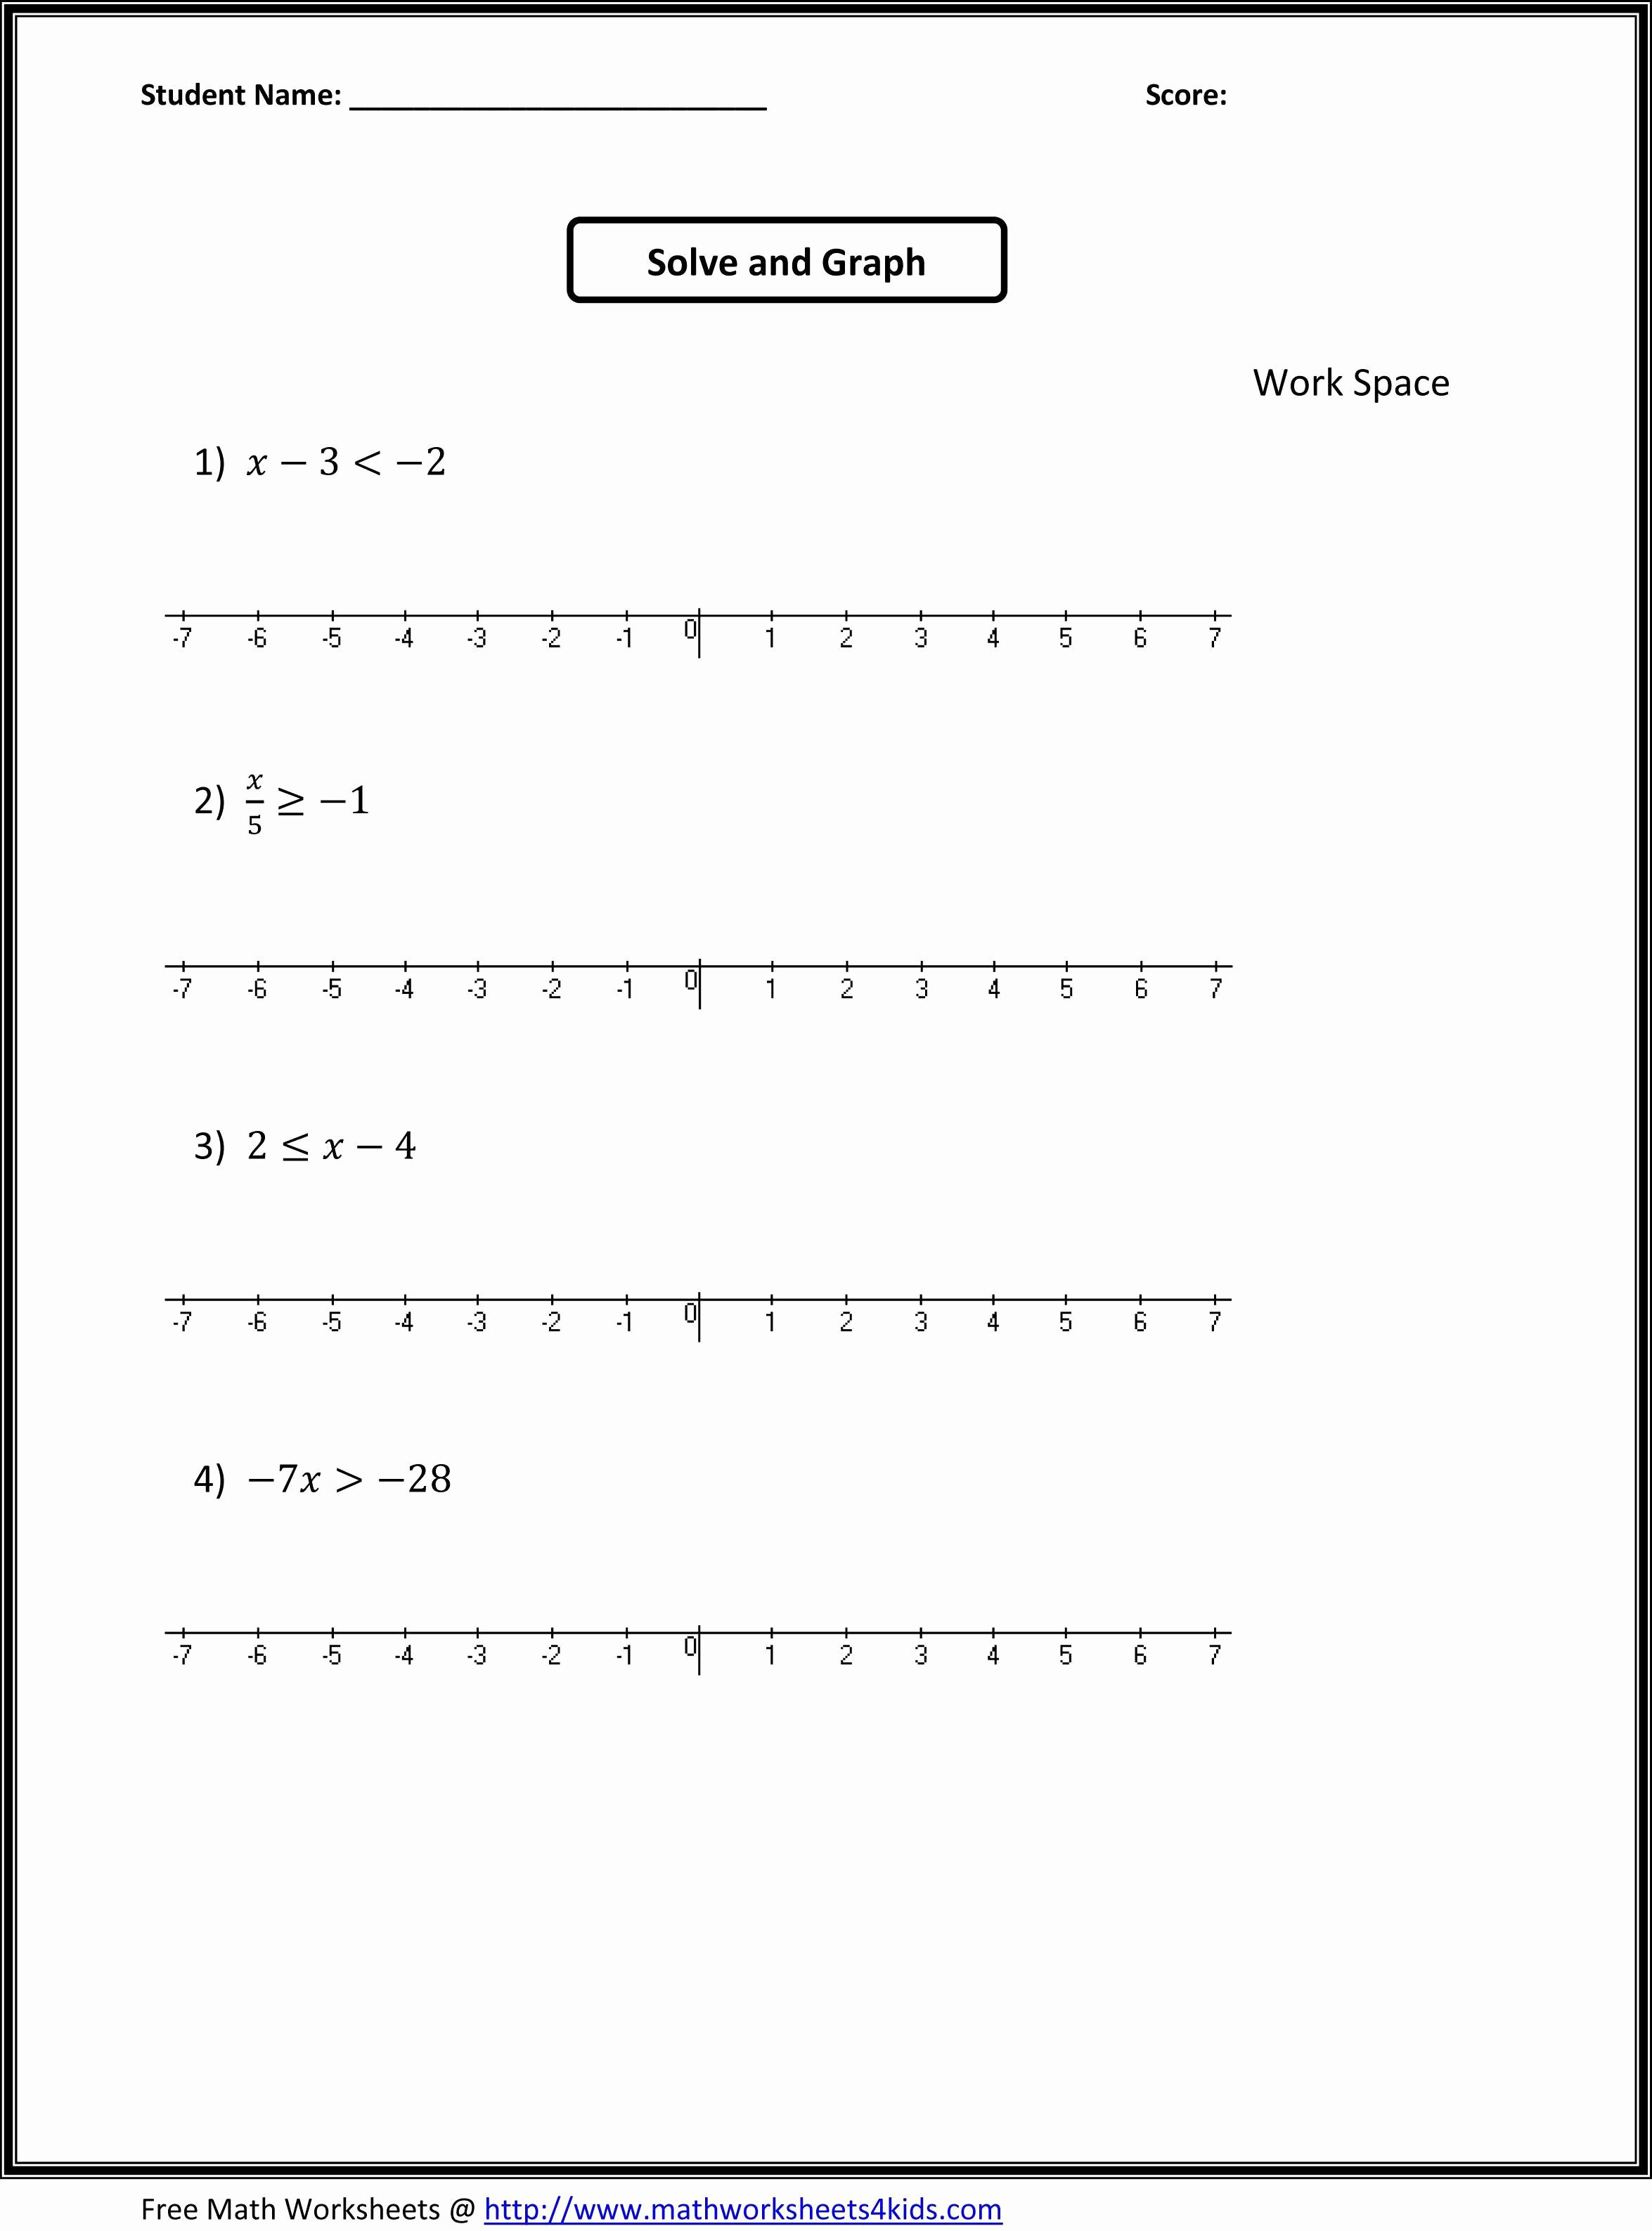 Solving Quadratic Inequalities Worksheet Elegant solving Quadratic Inequalities Worksheet Worksheet Idea